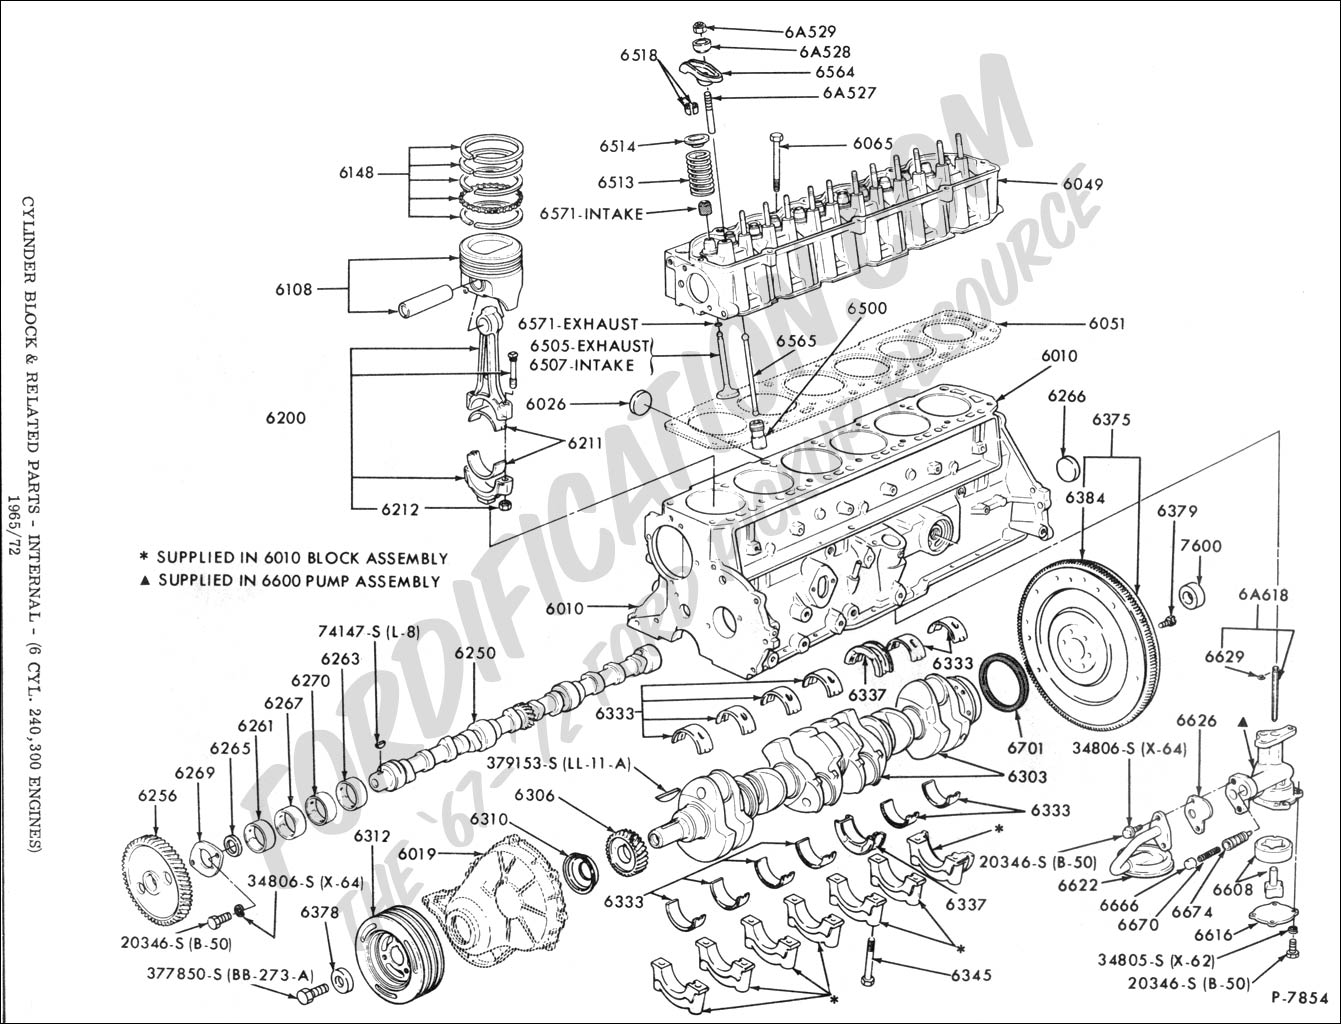 1970 Ford F100 240 Wiring Another Blog About Diagram 1967 F 100 Truck Technical Drawings And Schematics Section E Engine Rh Fordification Com